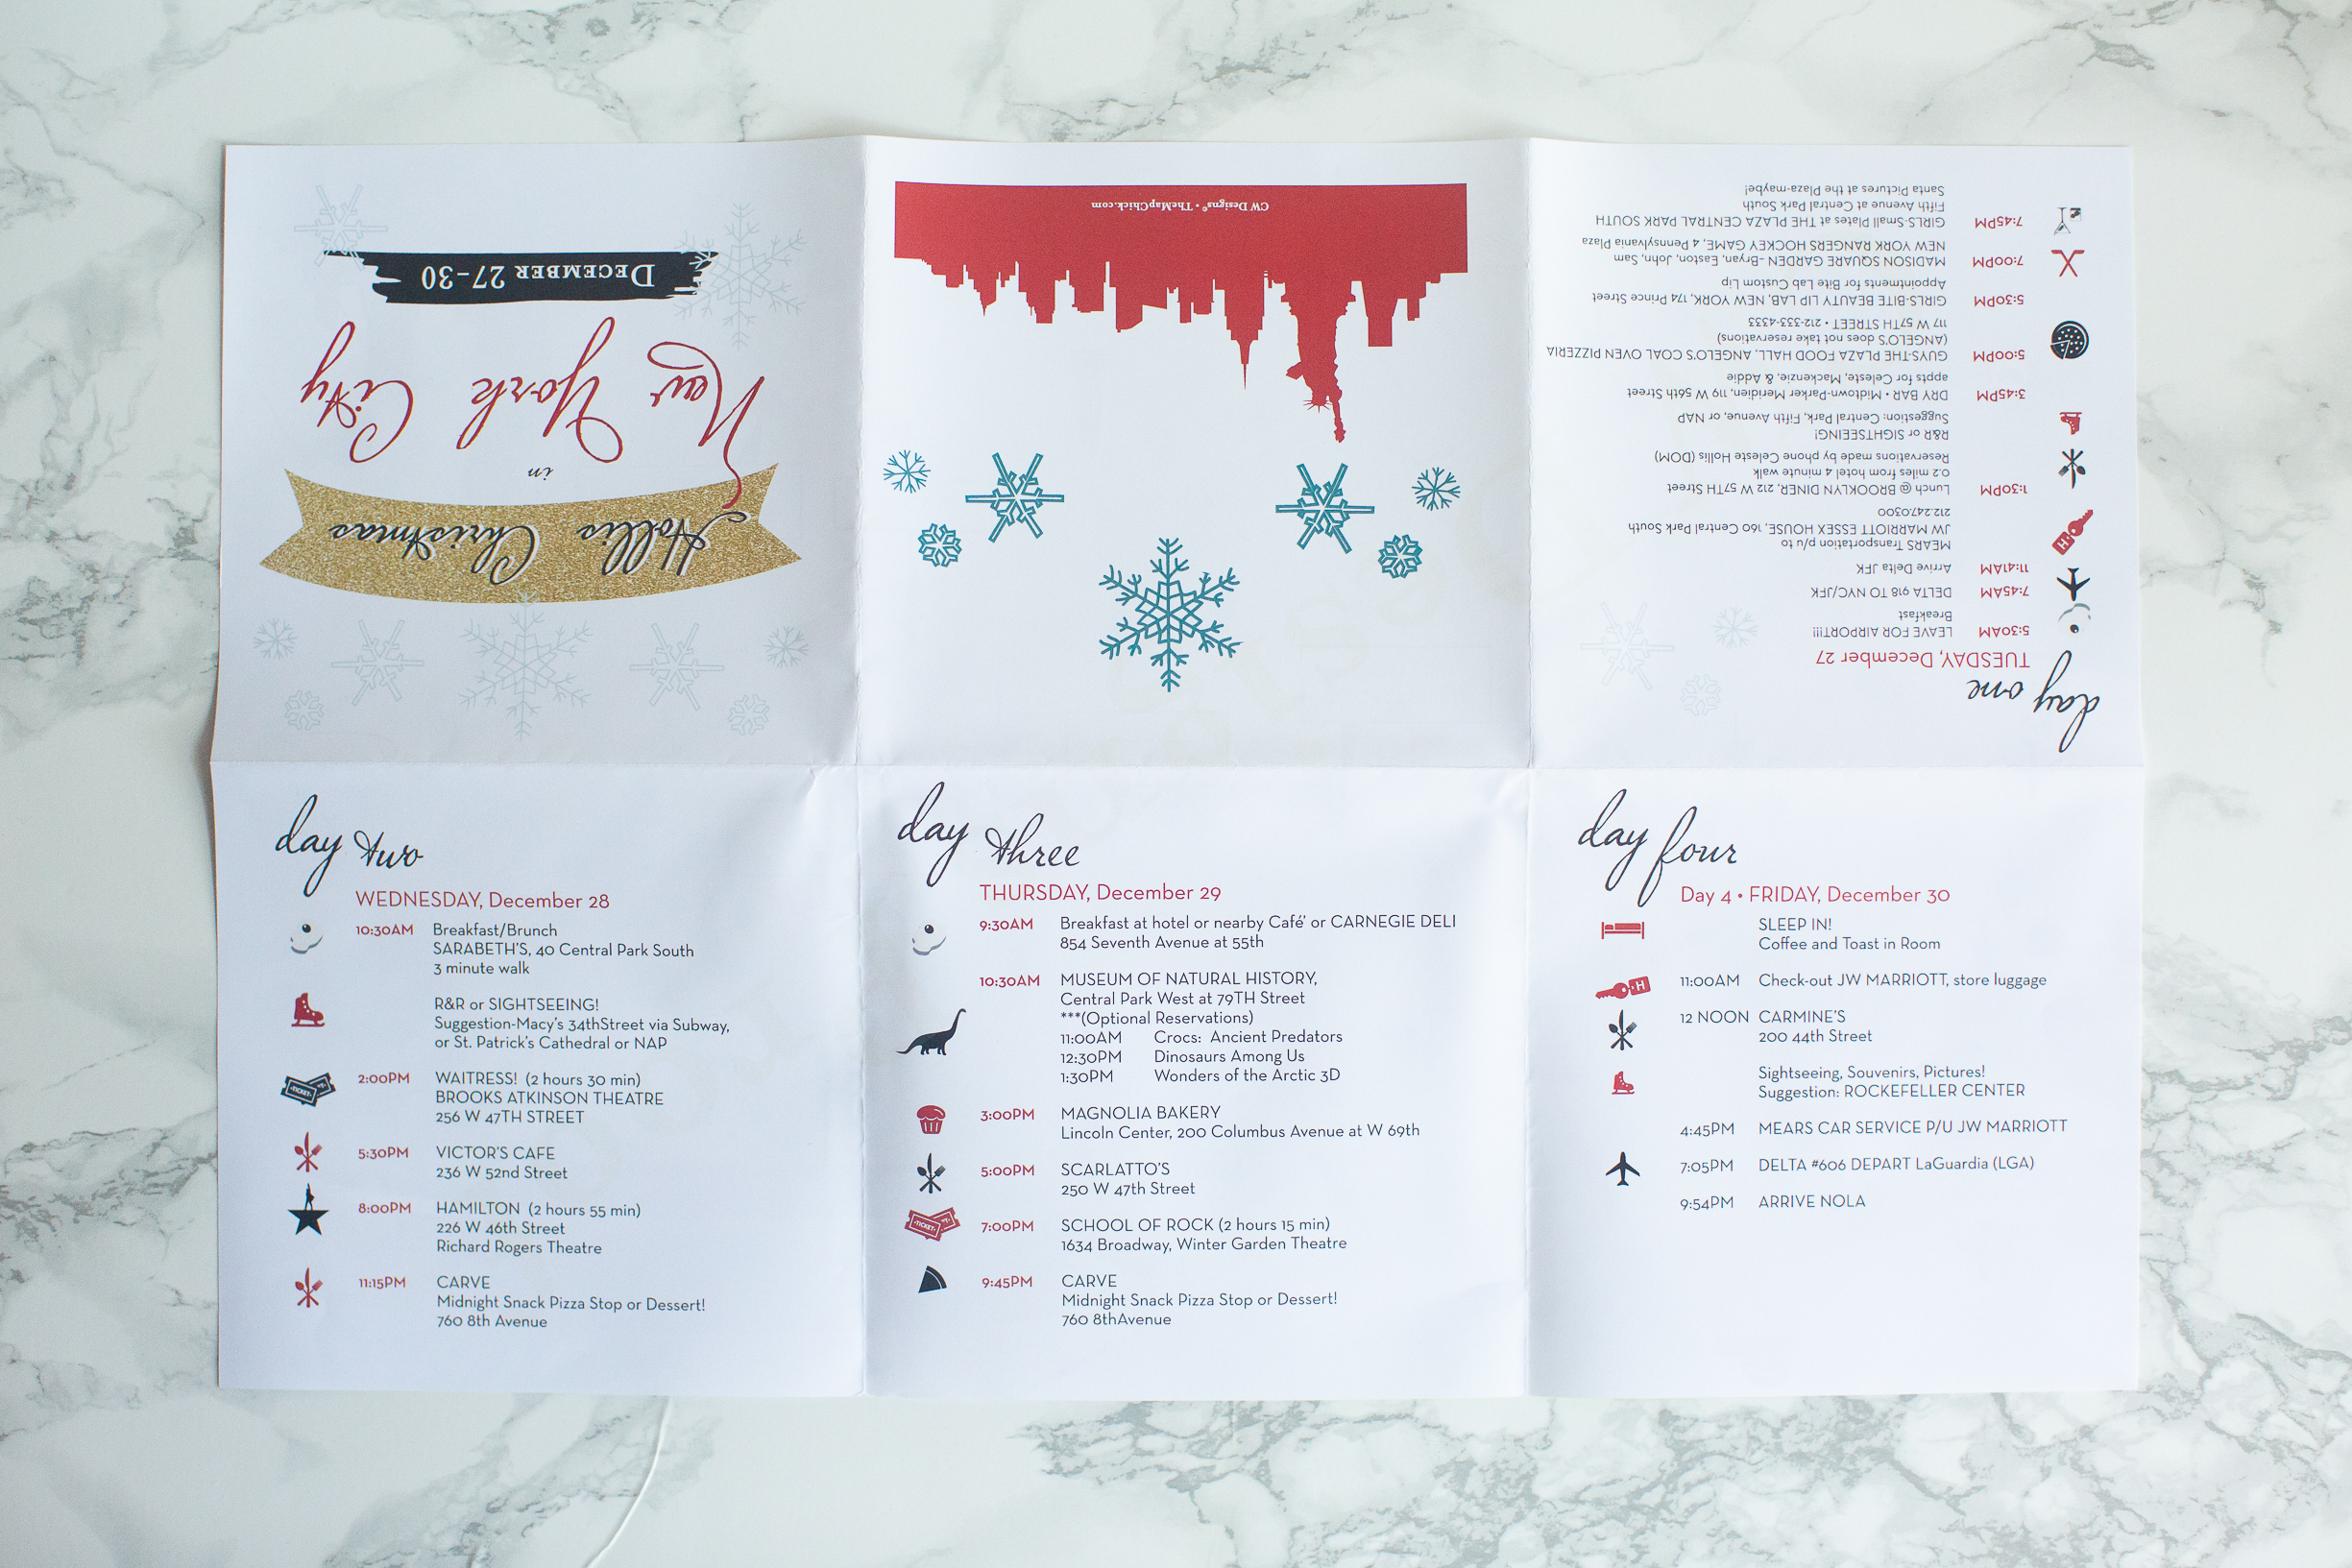 "Family Holiday Vacation, NYC with Week Itinerary   11"" x 17"" Quad Fold"